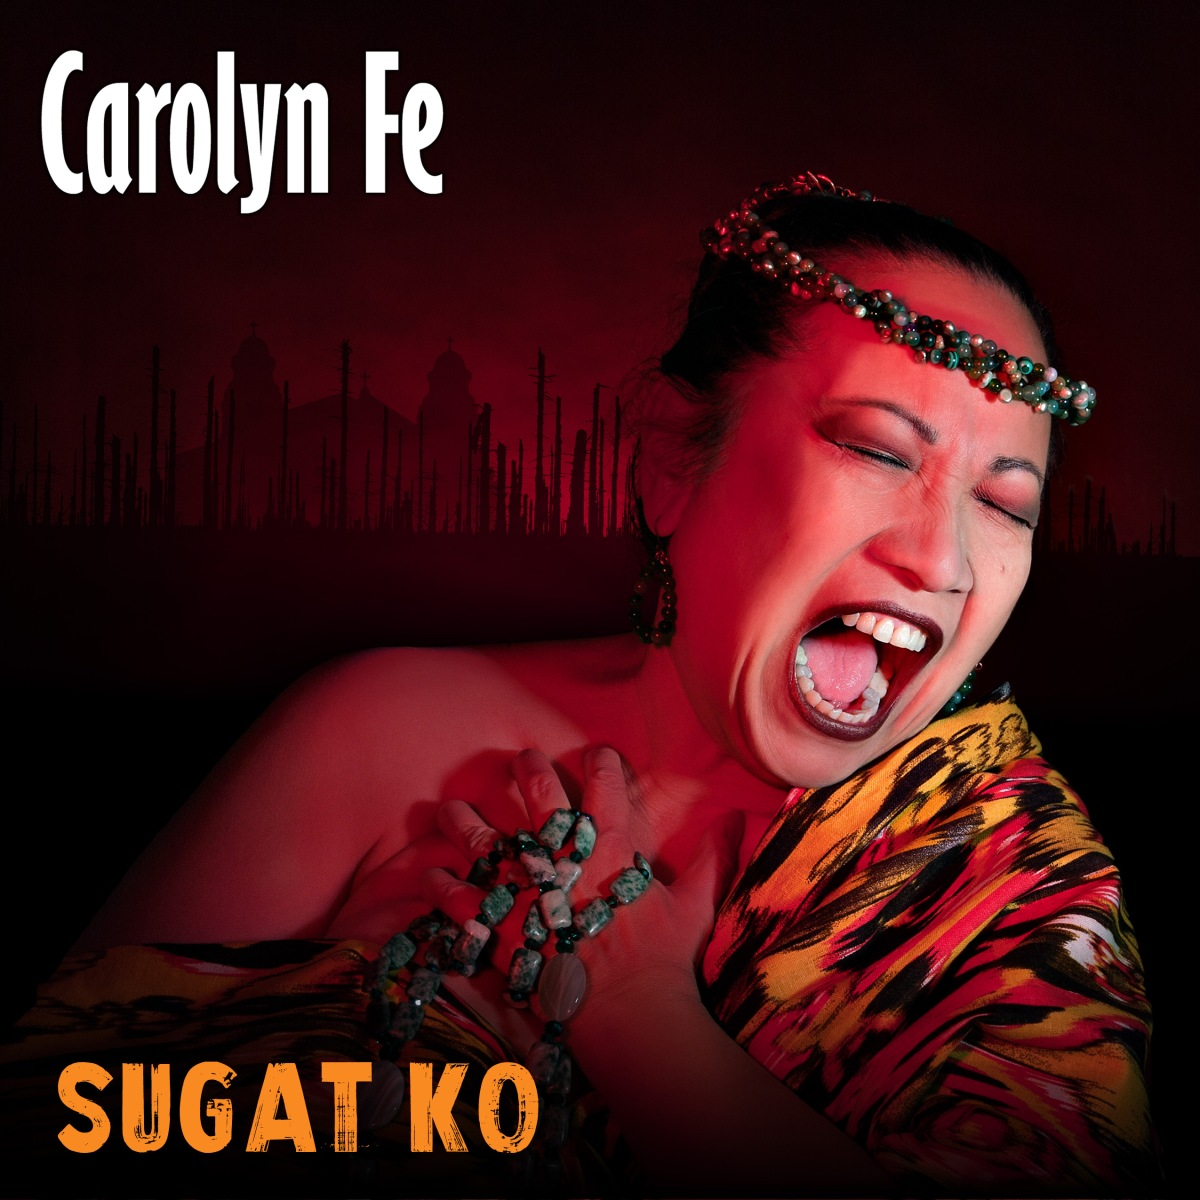 Interview: Blues singer/songwriter & actor CarolynFe